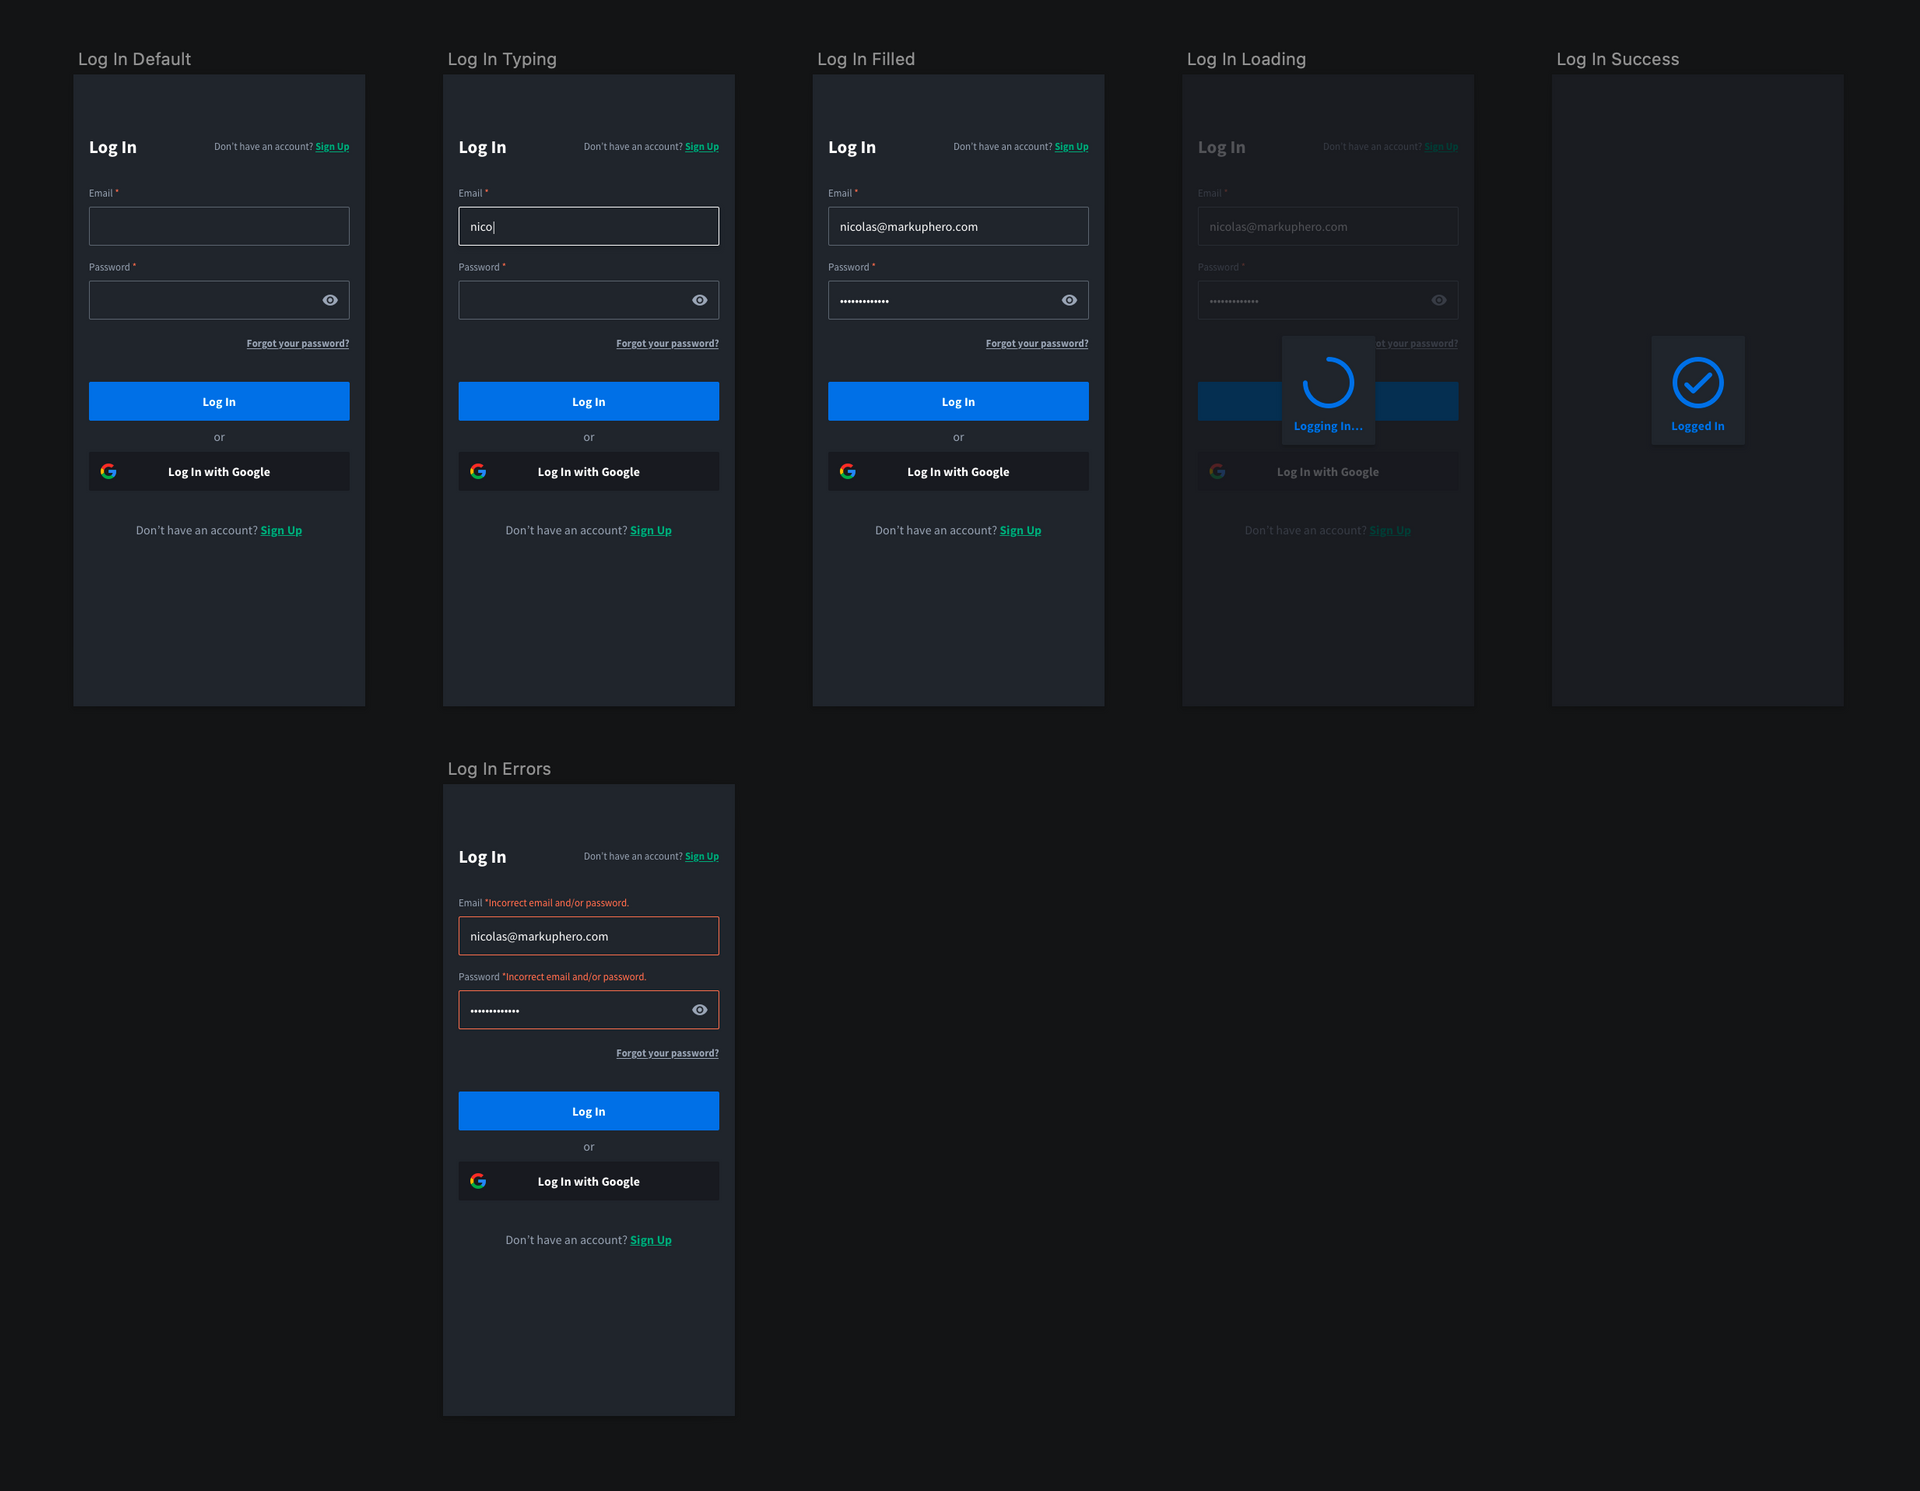 Sign in / log in flow designs from Markup Hero